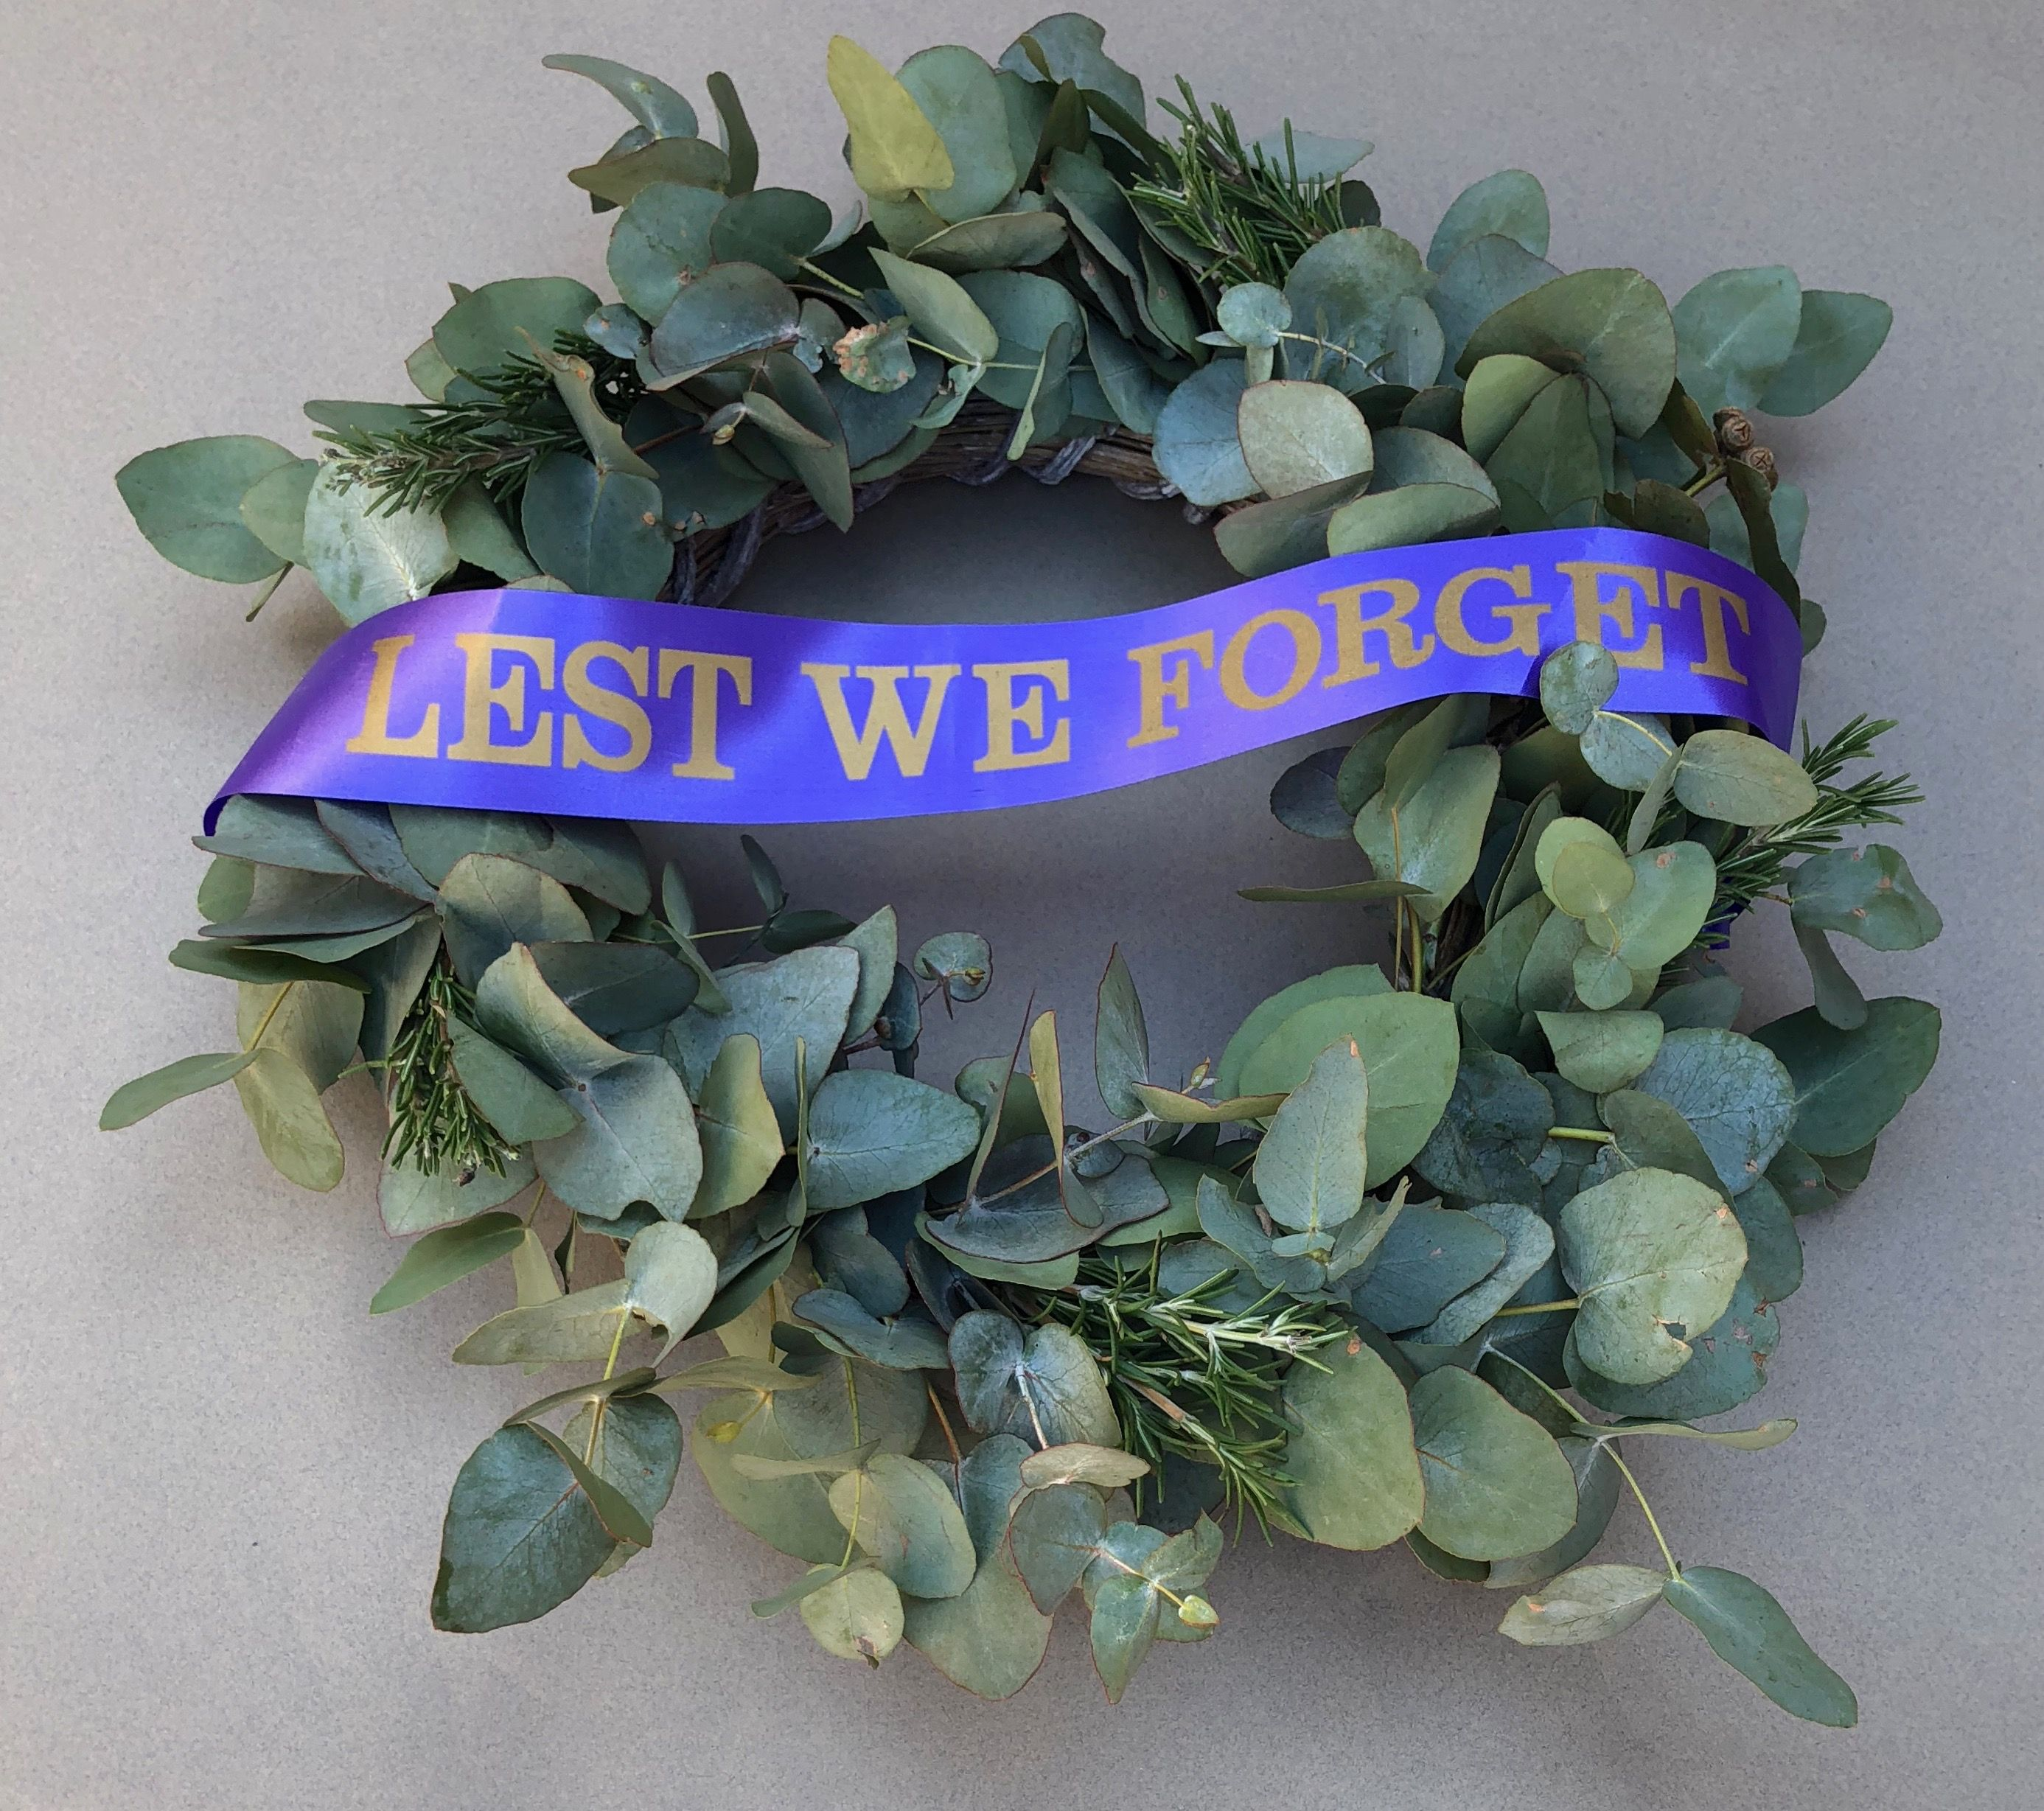 A.N.Z.A.C. Anzac wreath of eucalyptus and Rosemary on a